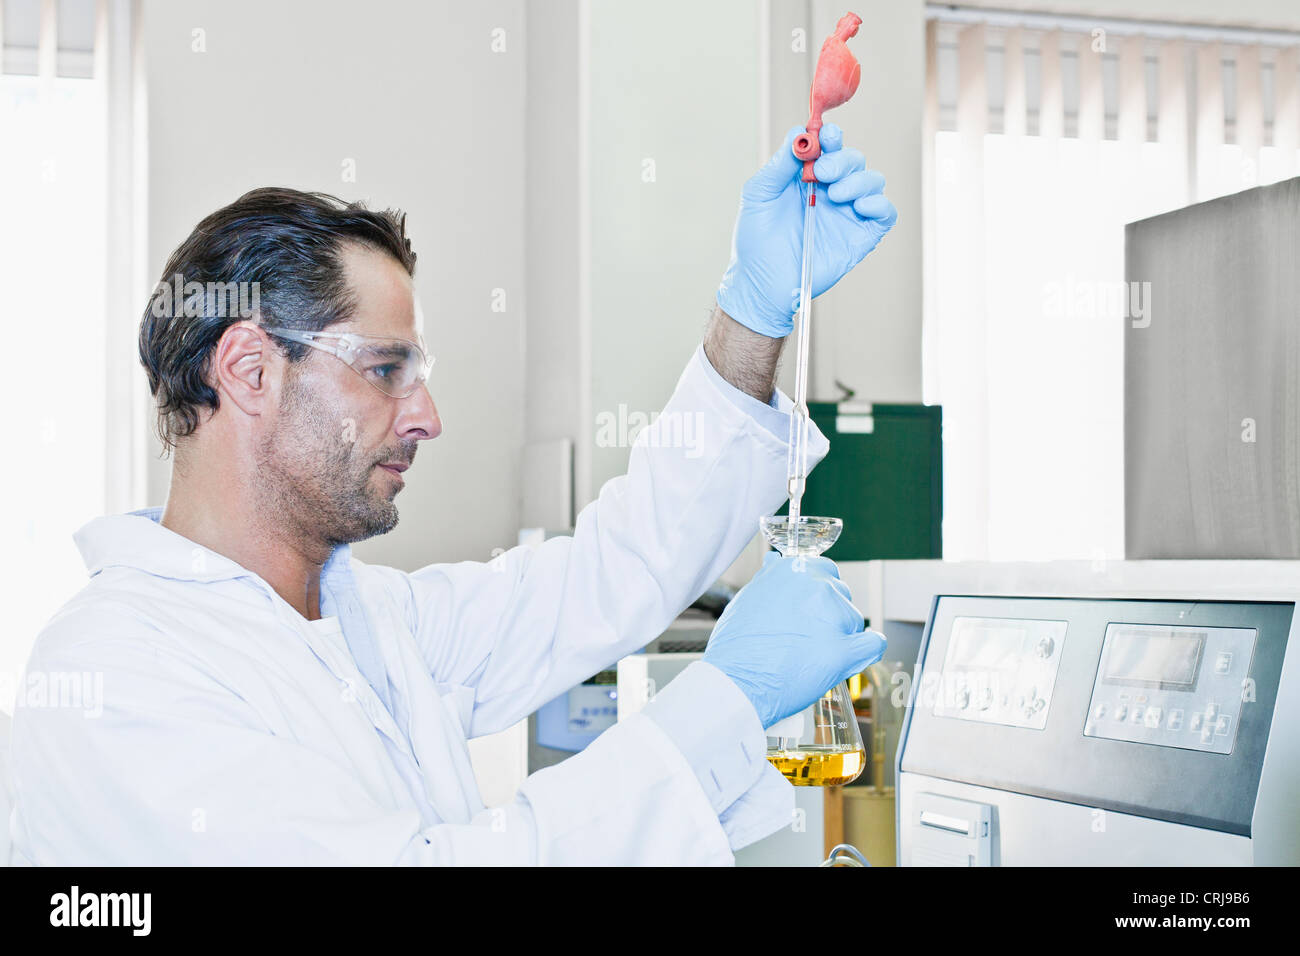 Scientist with pipette of liquid - Stock Image